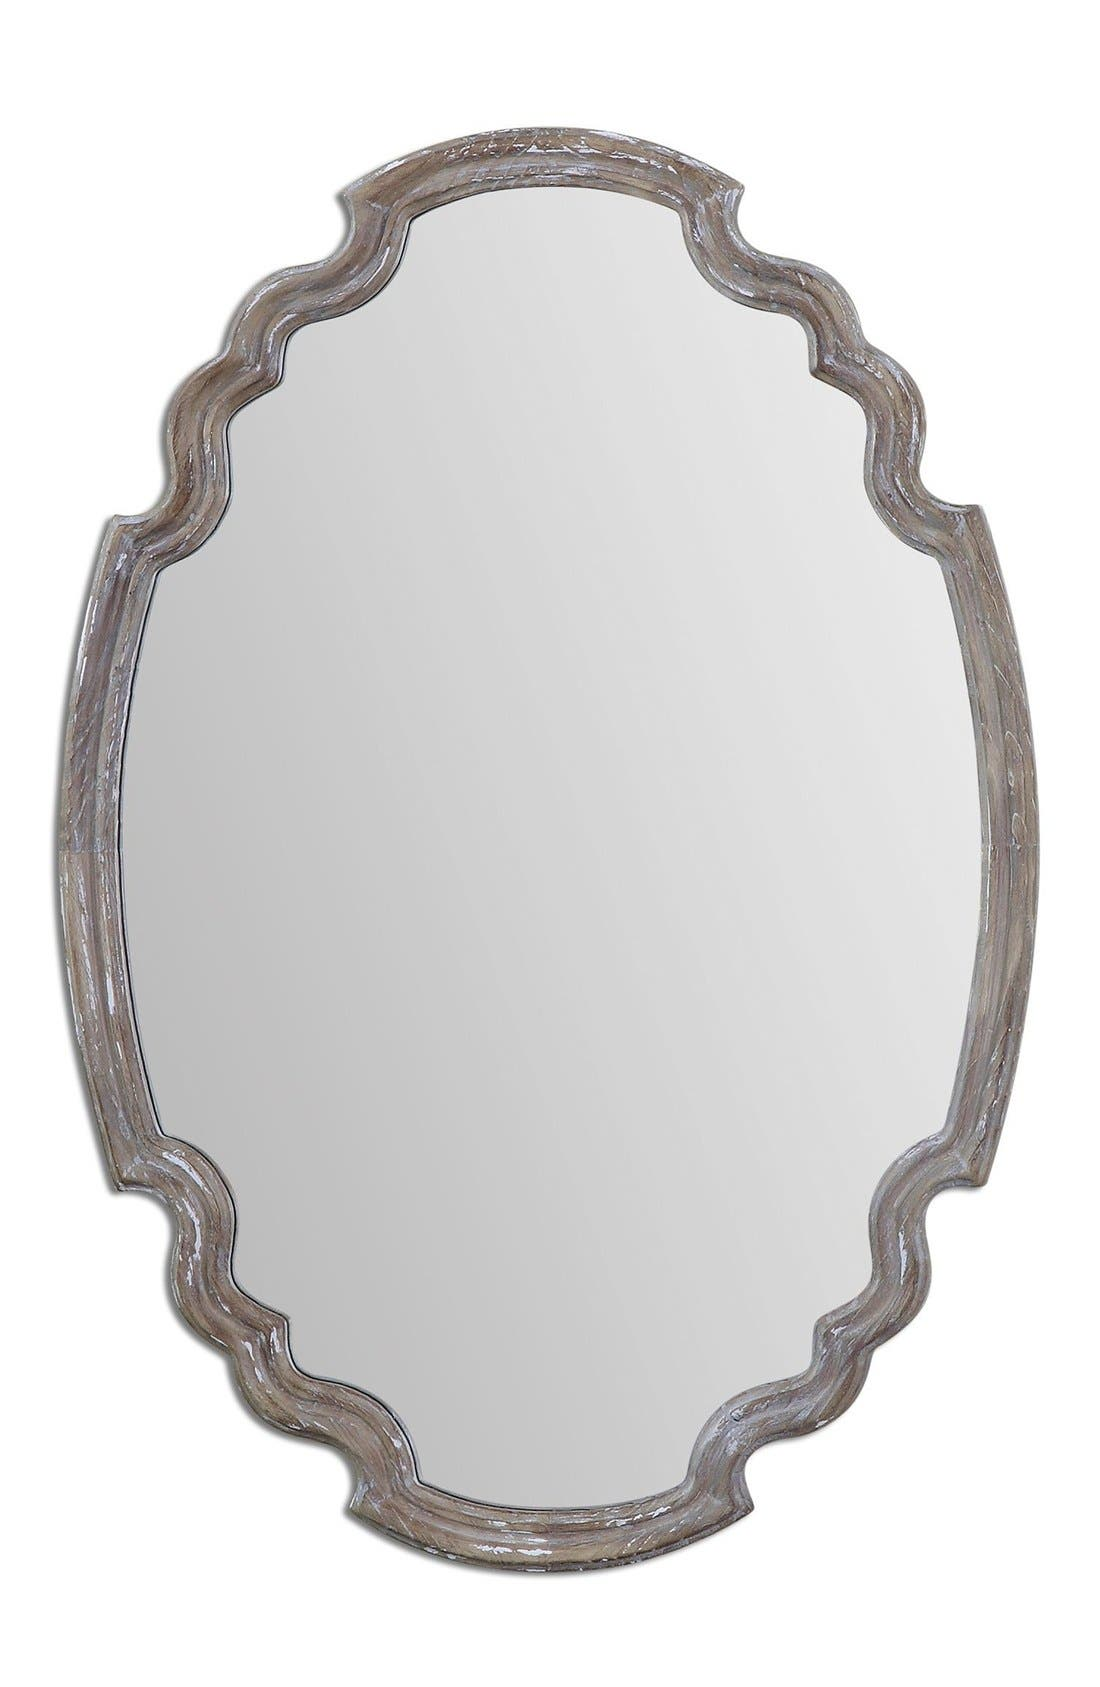 Uttermost 'Ludovica' Aged Finish Oval Wall Mirror